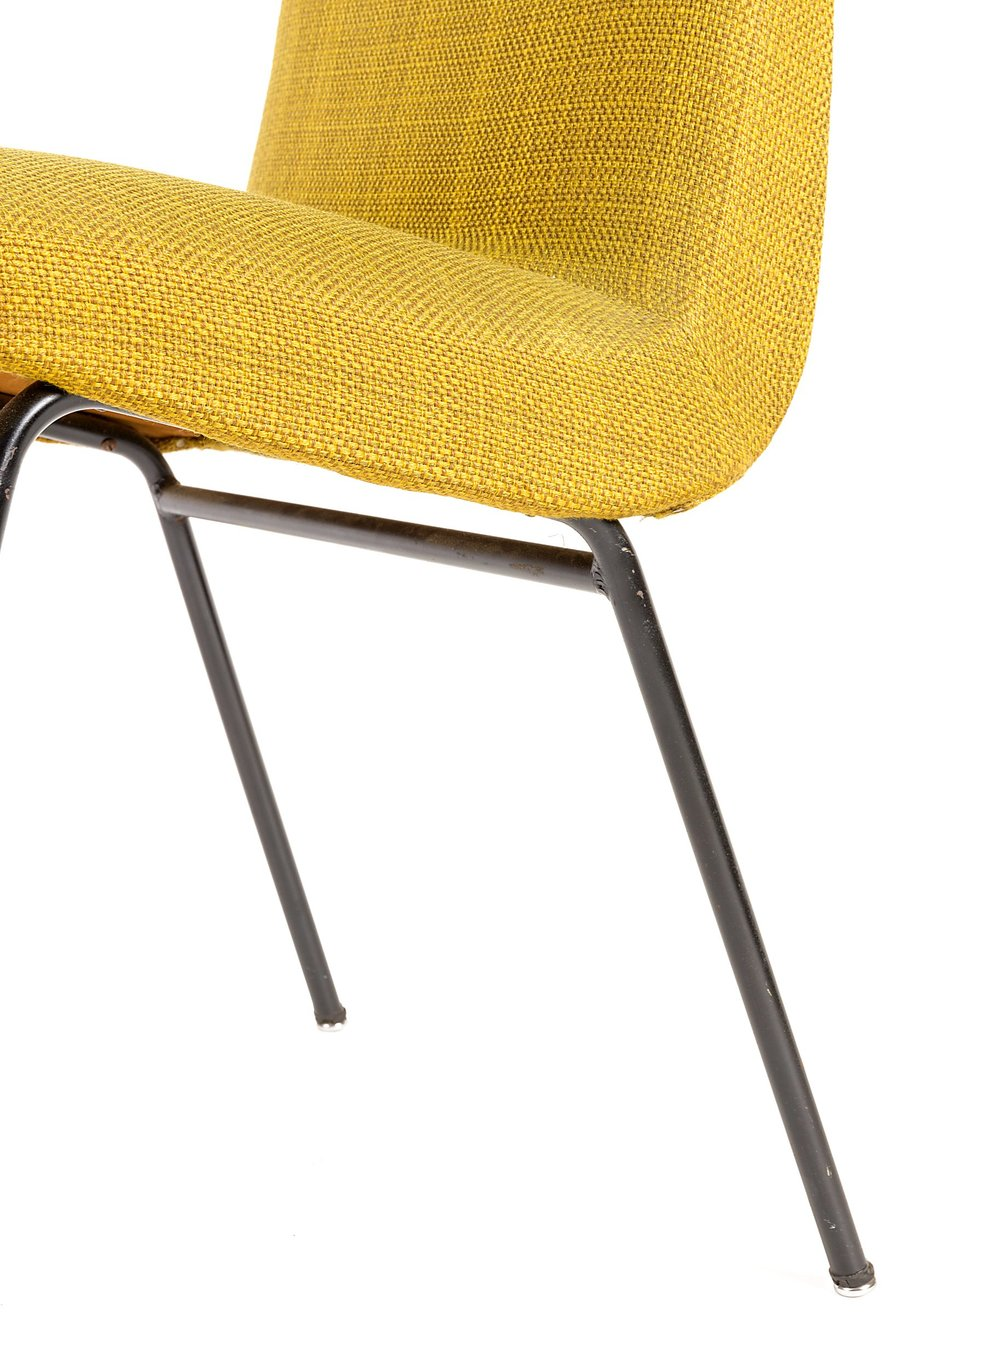 French_Dining_Chairs_G_org.jpg